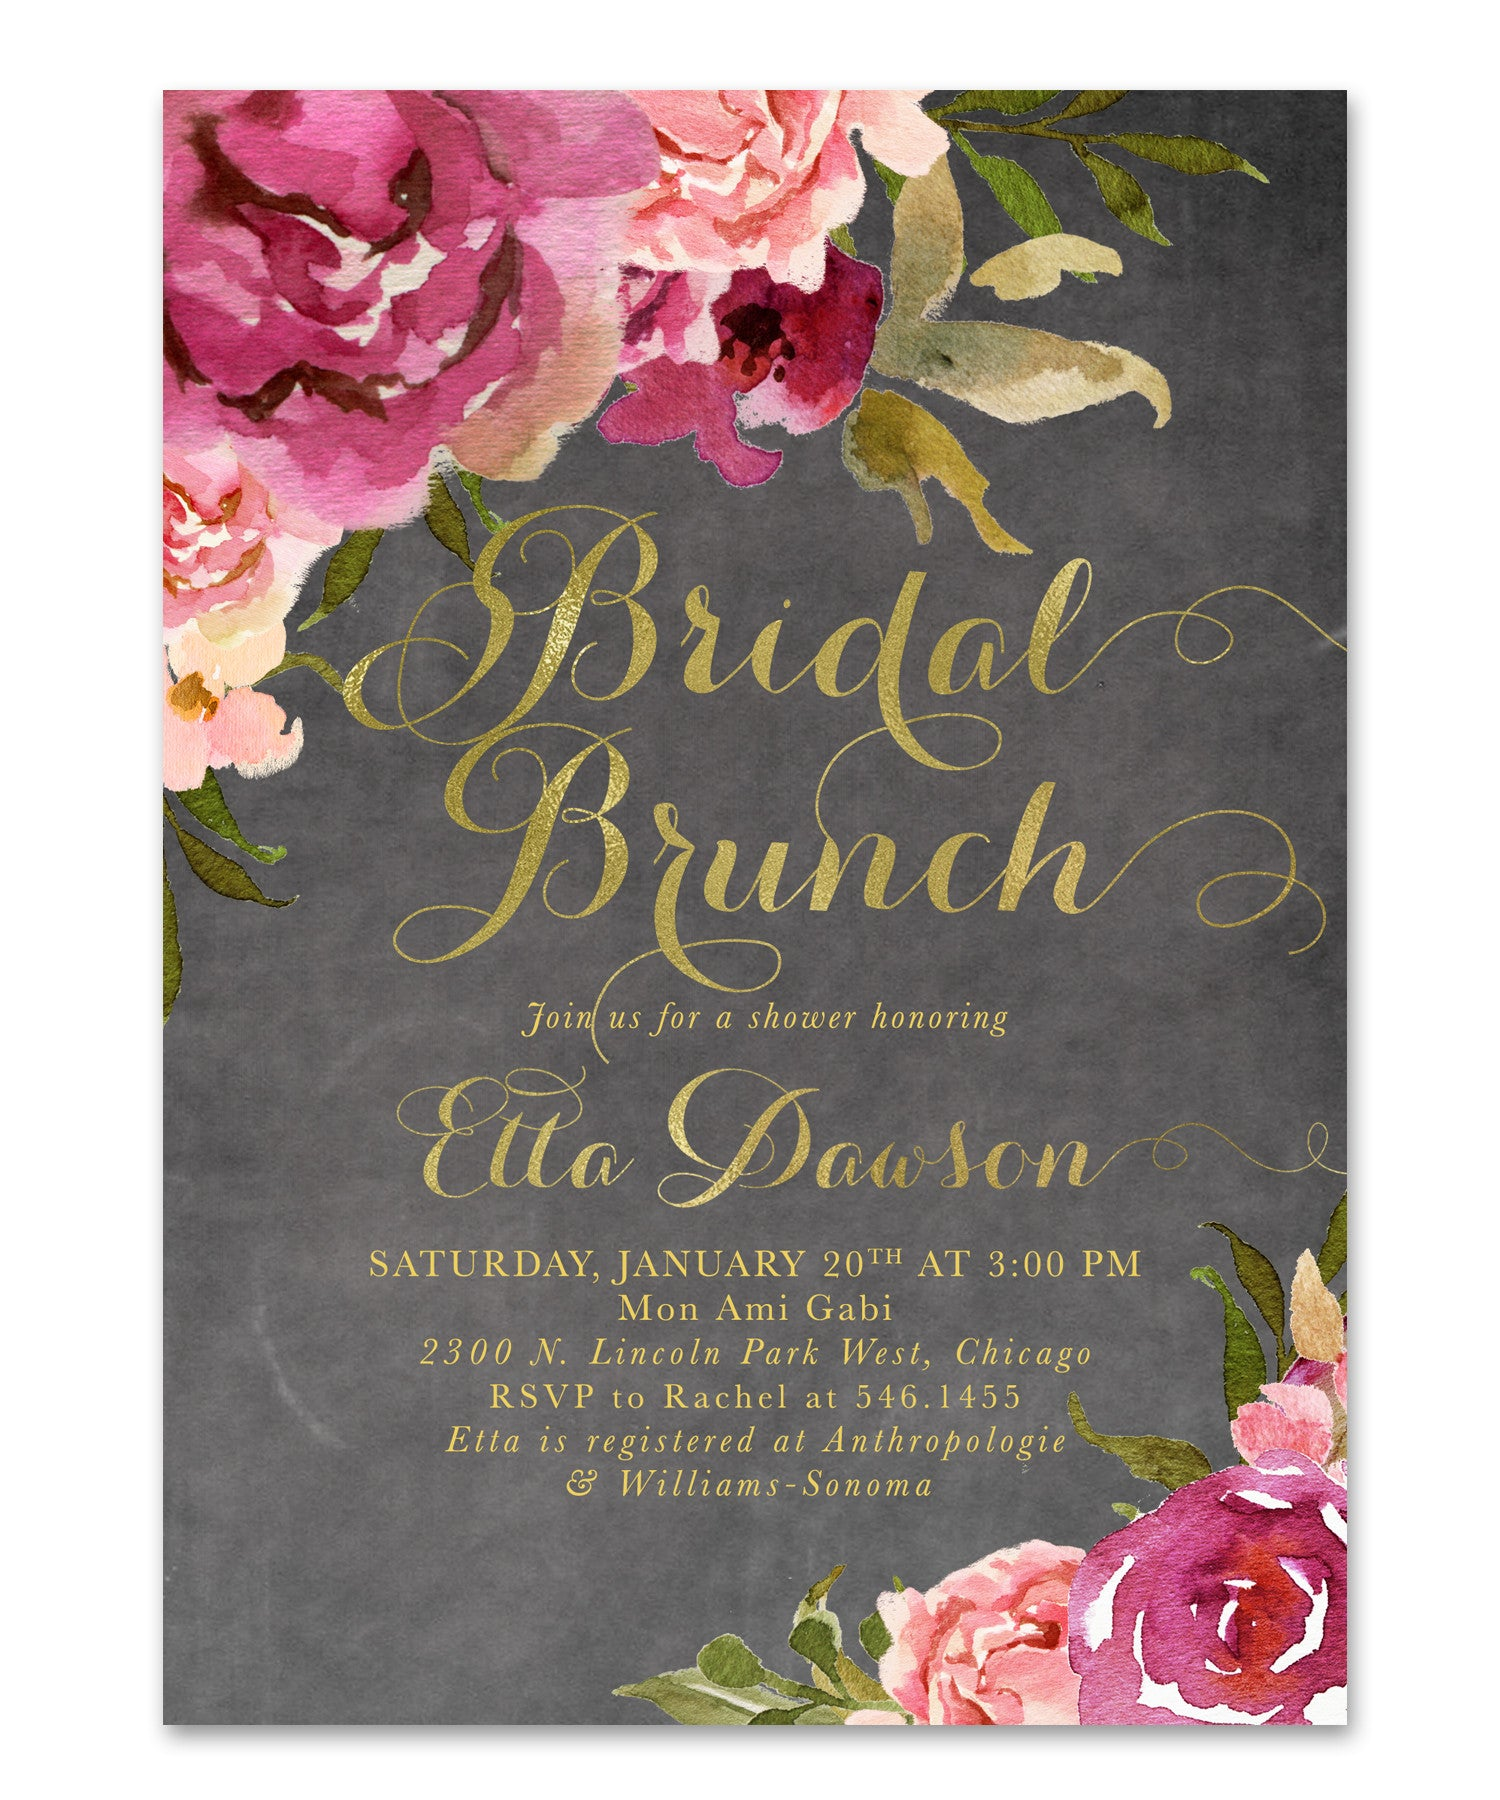 etta bridal shower brunch invitation burgundy blush pink gold chalkboard floral